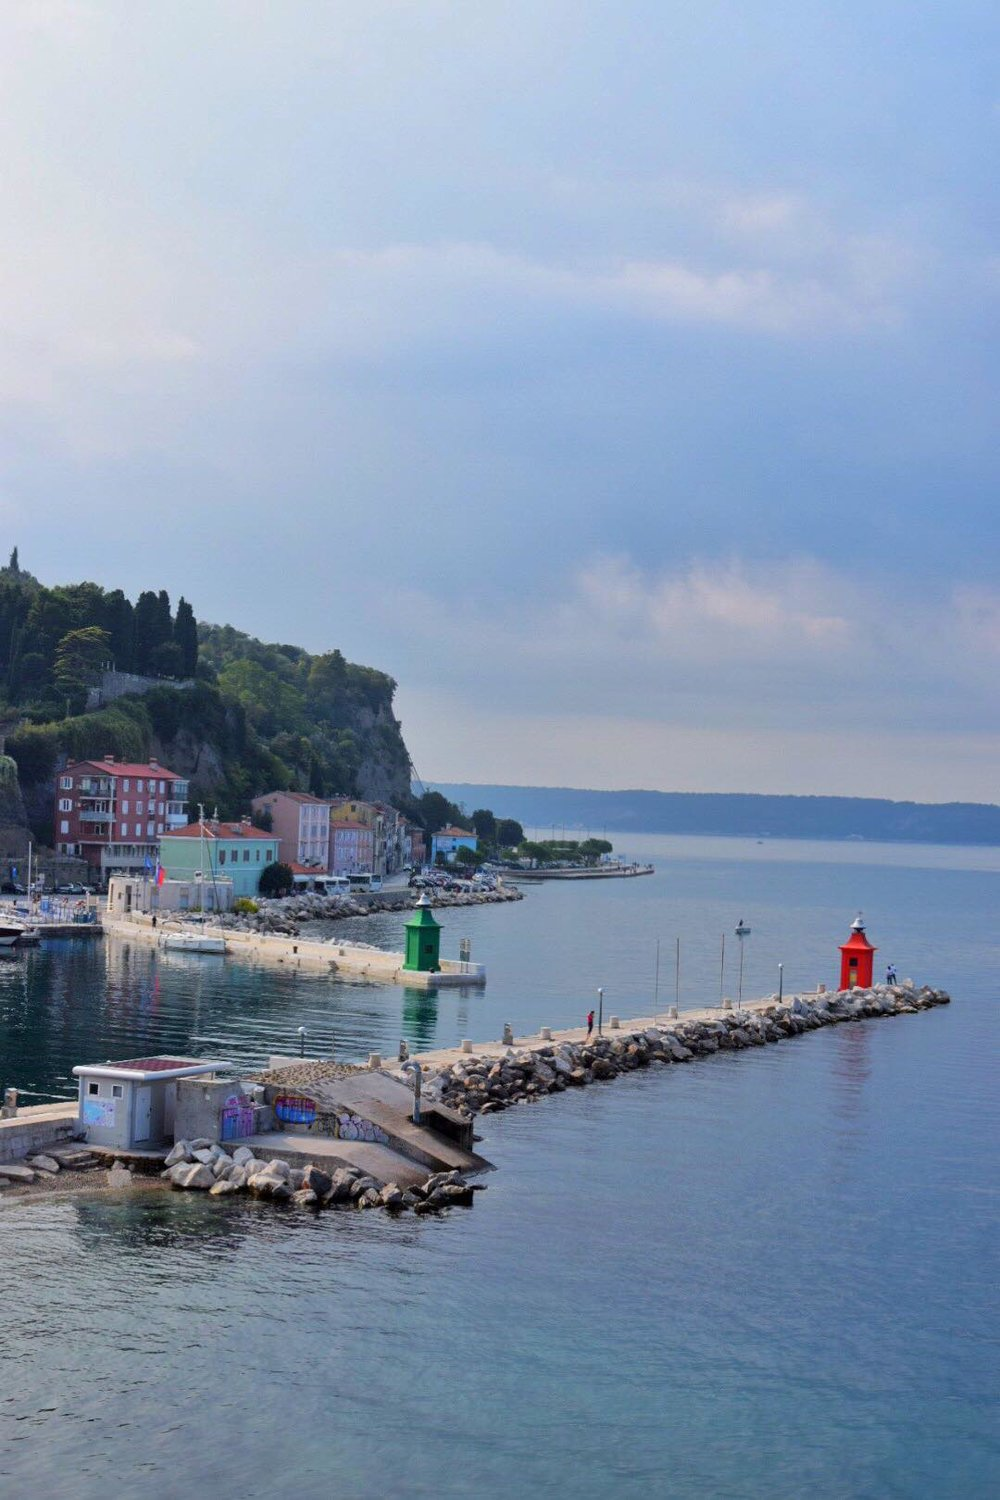 Kach Solo Travels Day 39 - 40: Some more bits from my 4 days stay in PIRAN, SLOVENIA! 💋